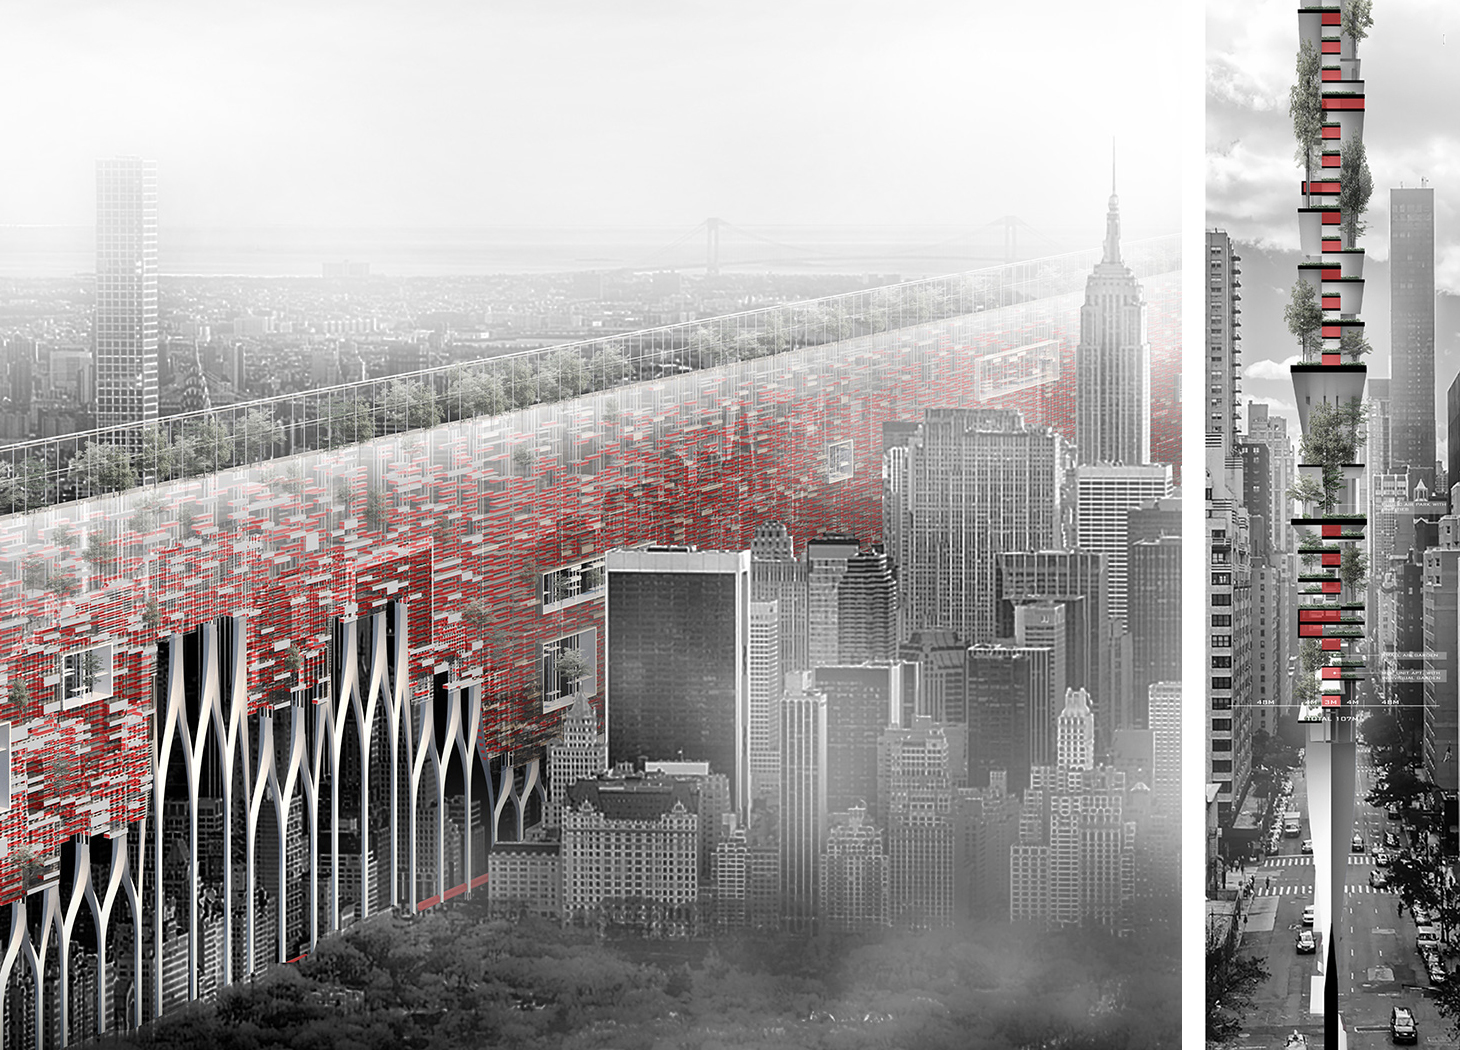 skyscraper proposal adds affordable housing in a new vertical system